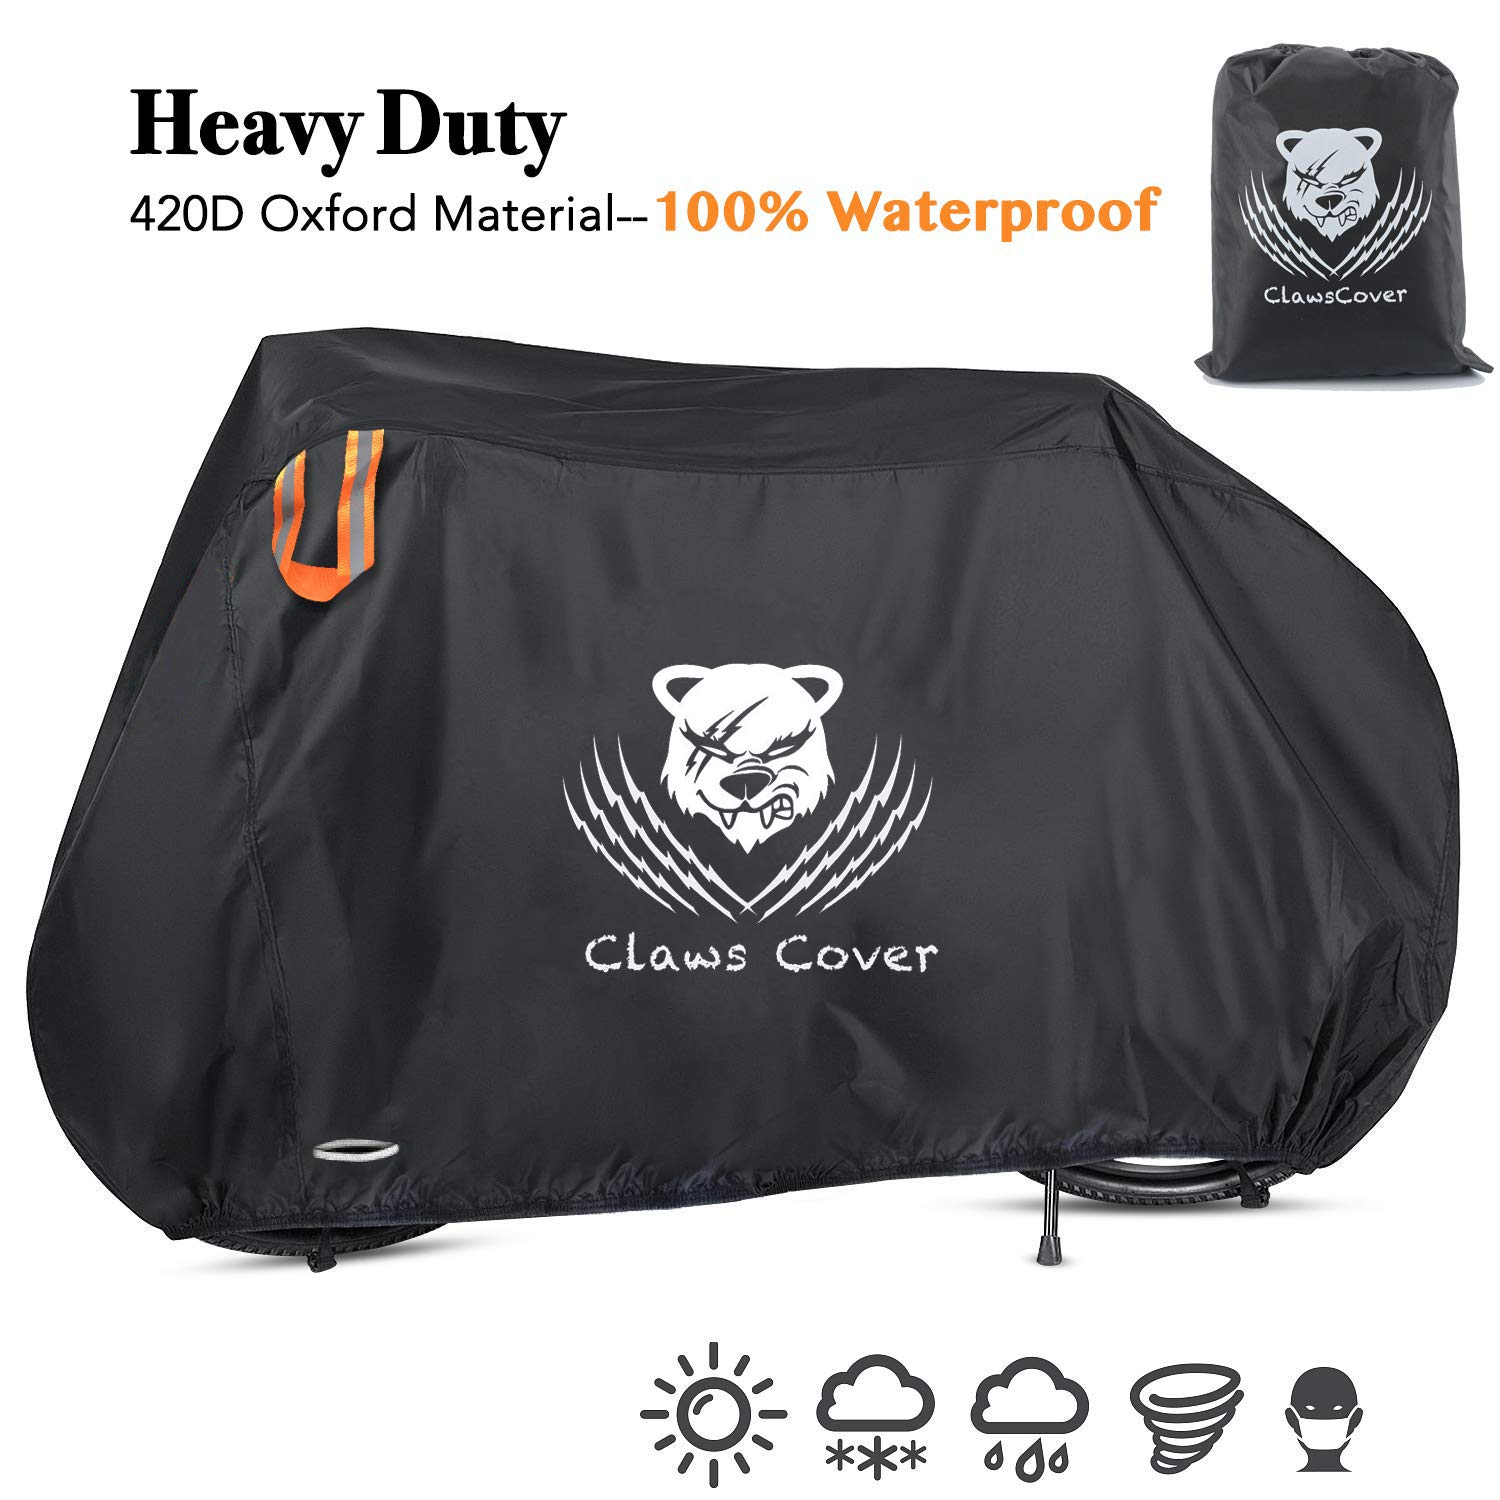 ClawsCover Bikes Covers Waterproof XXL 83'' Heavy Duty 420D Oxford Bicycles Cover Accessories with Lock Hole Outdoor All Weather for Mountain Road Electric Beach Cruiser Exercise Hybrid Tricycle Bike by ClawsCover